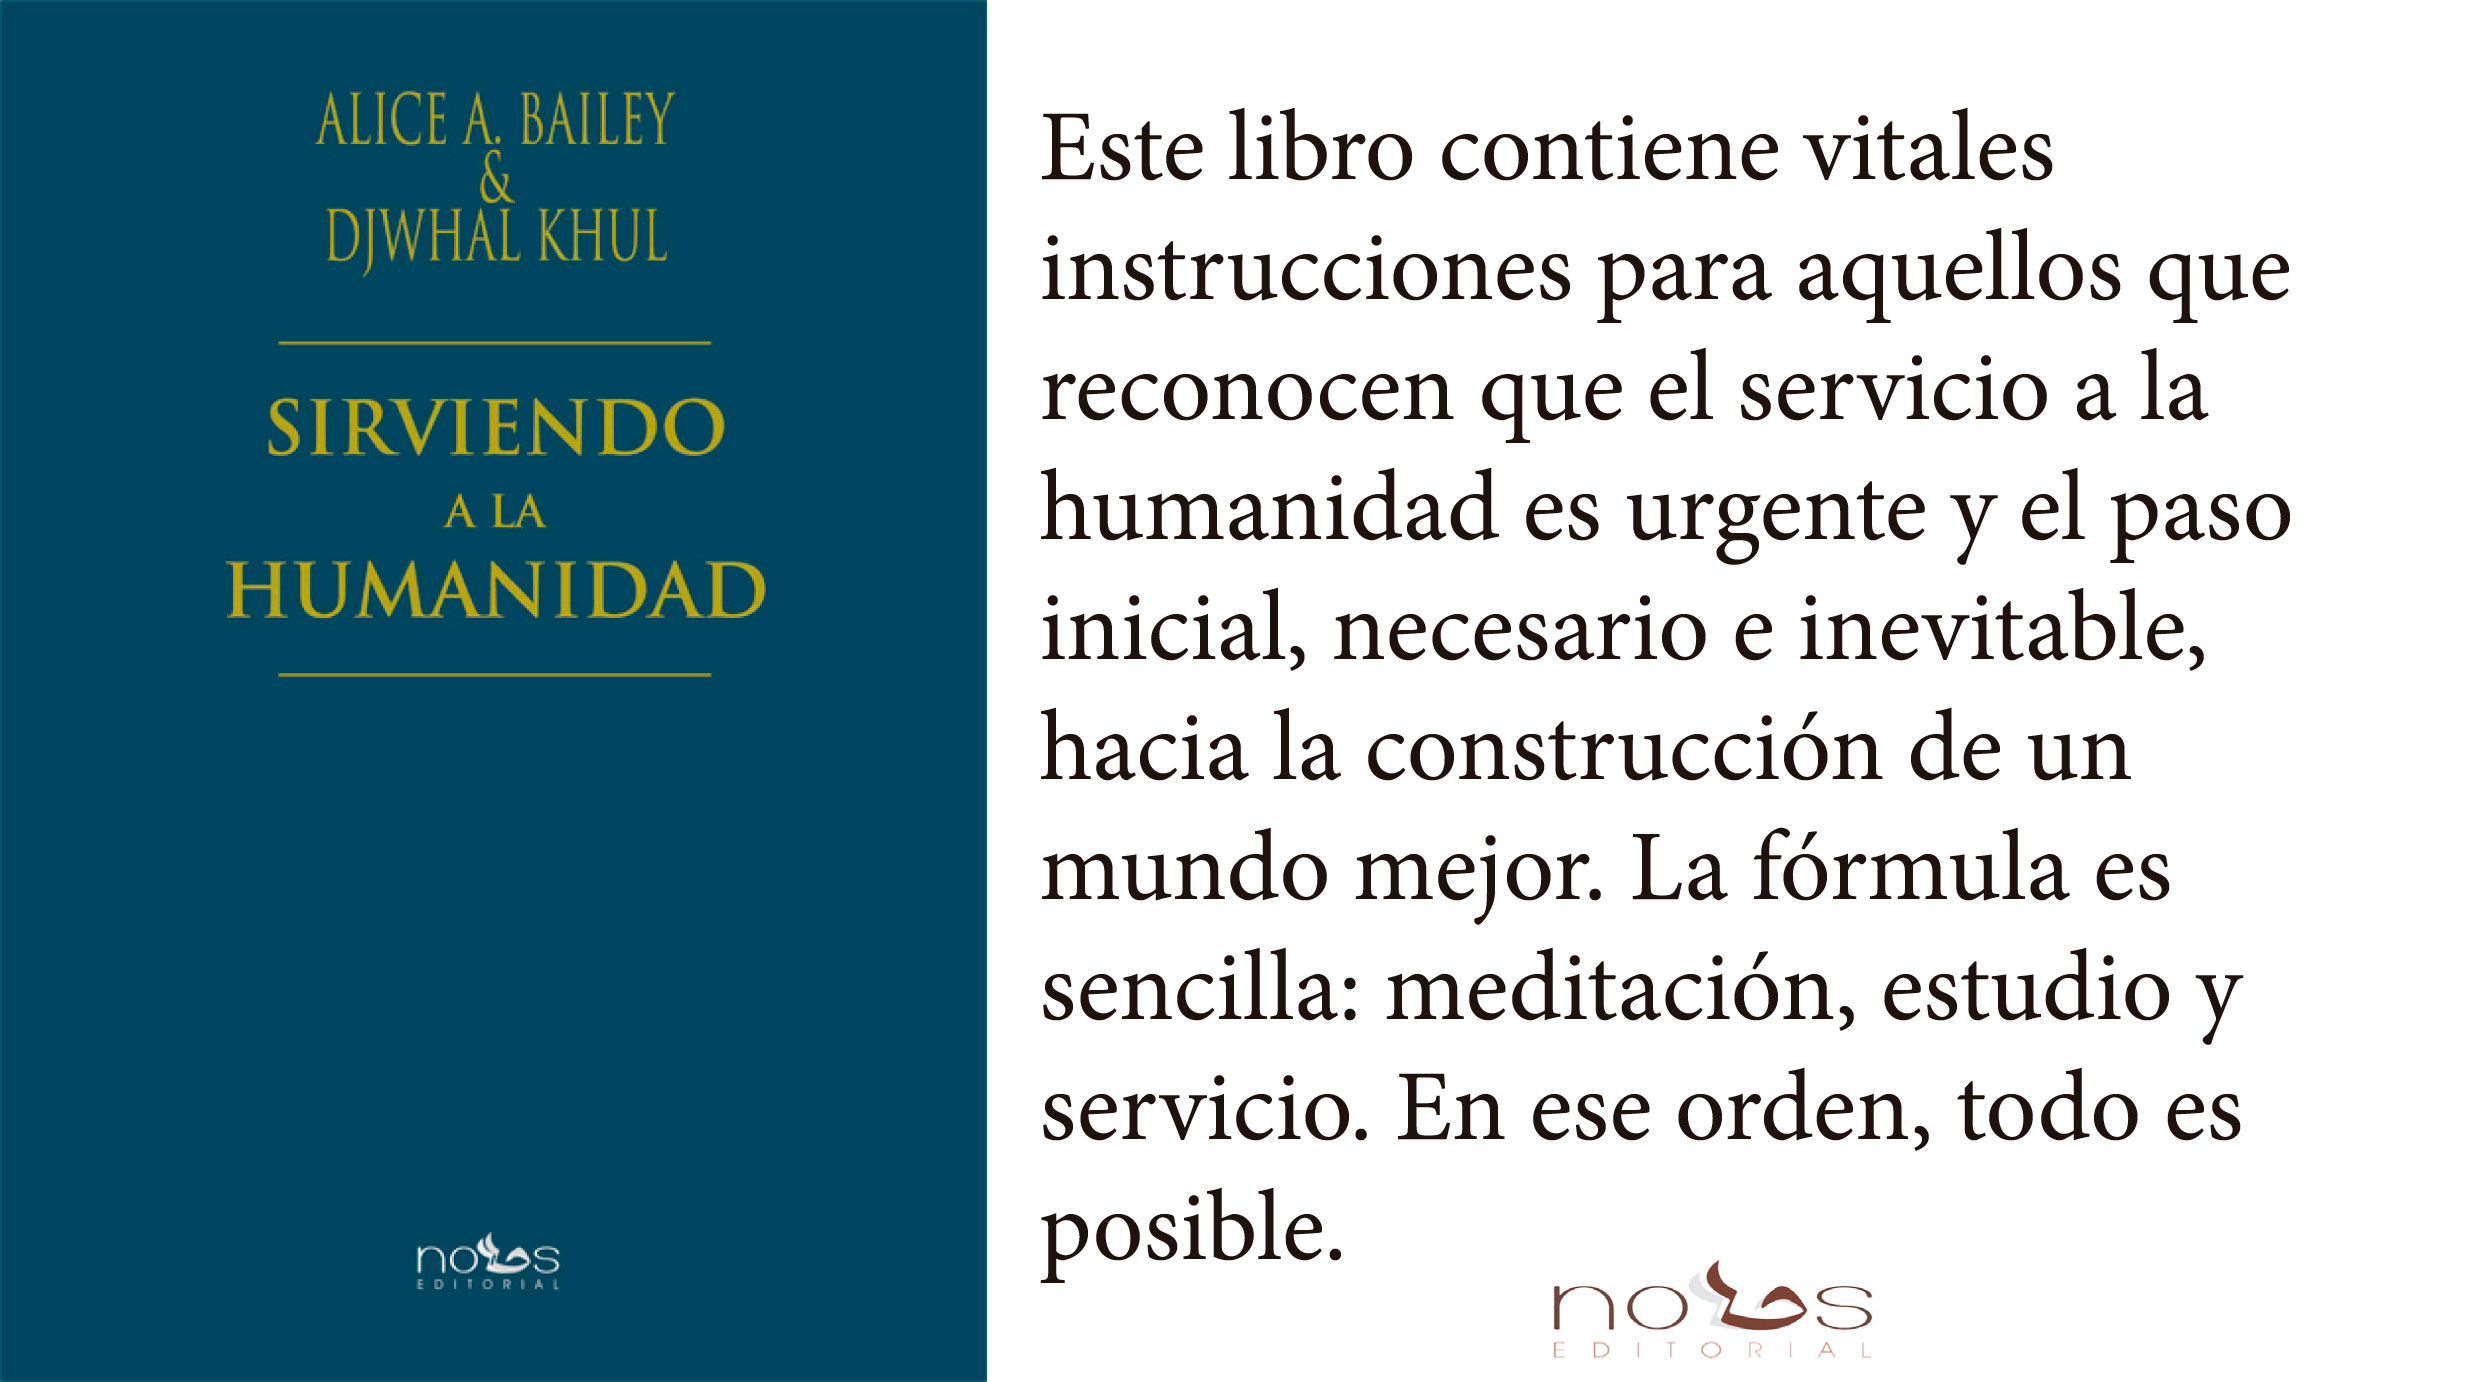 Sirviendo a la Humanidad, de Alice A. Bailey